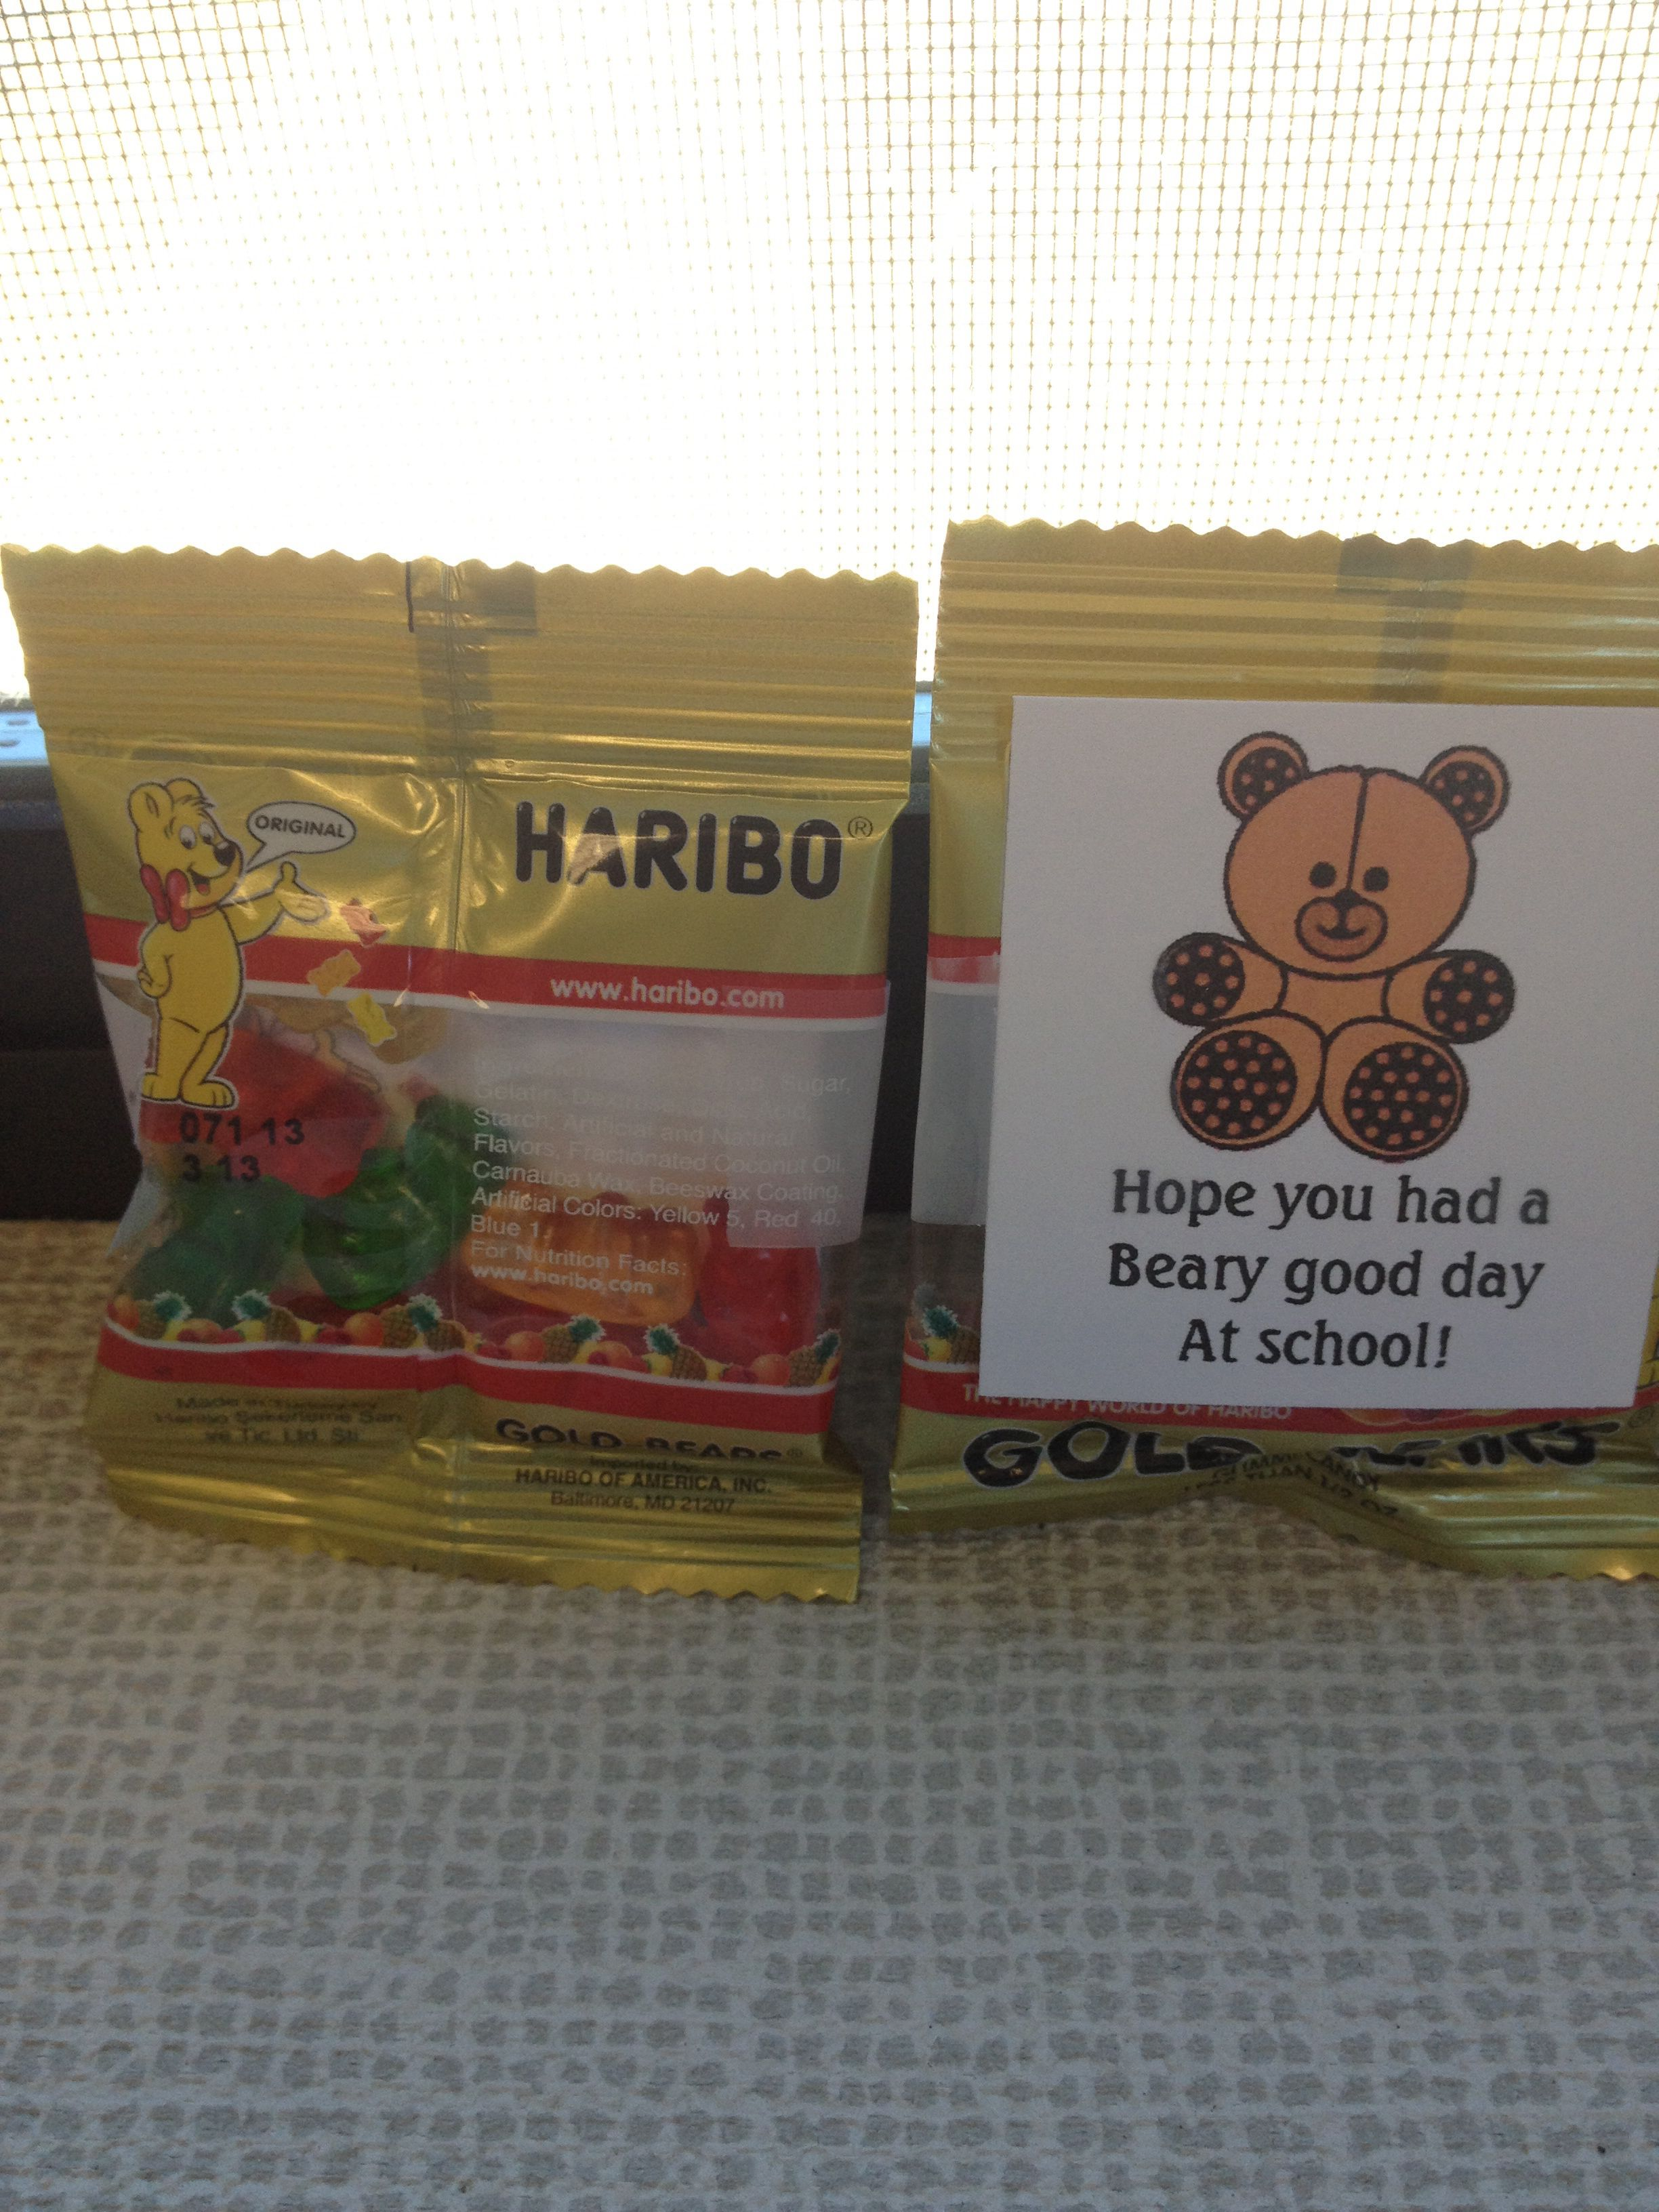 Back To School Goo S Gummy Bears And Note Hope You Had